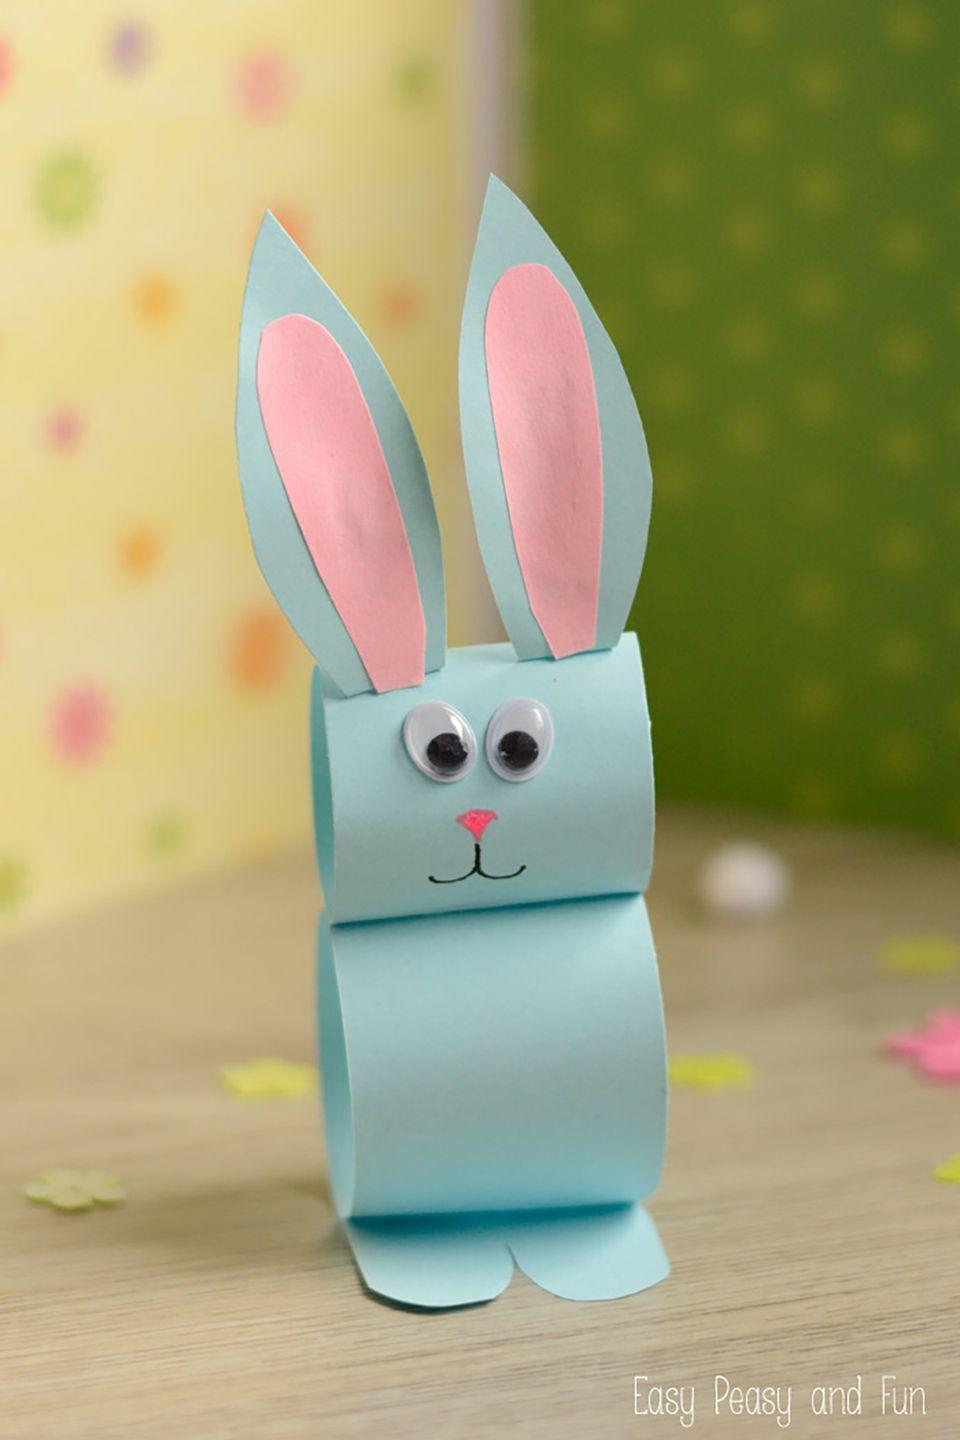 """<p>You'll already have everything you need at home to help your kids create these cute Easter bunnies.</p><p><strong>Get the tutorial at <a href=""""http://www.easypeasyandfun.com/paper-bunny-craft/"""" rel=""""nofollow noopener"""" target=""""_blank"""" data-ylk=""""slk:Easy Peasy And Fun"""" class=""""link rapid-noclick-resp"""">Easy Peasy And Fun</a>. </strong></p>"""